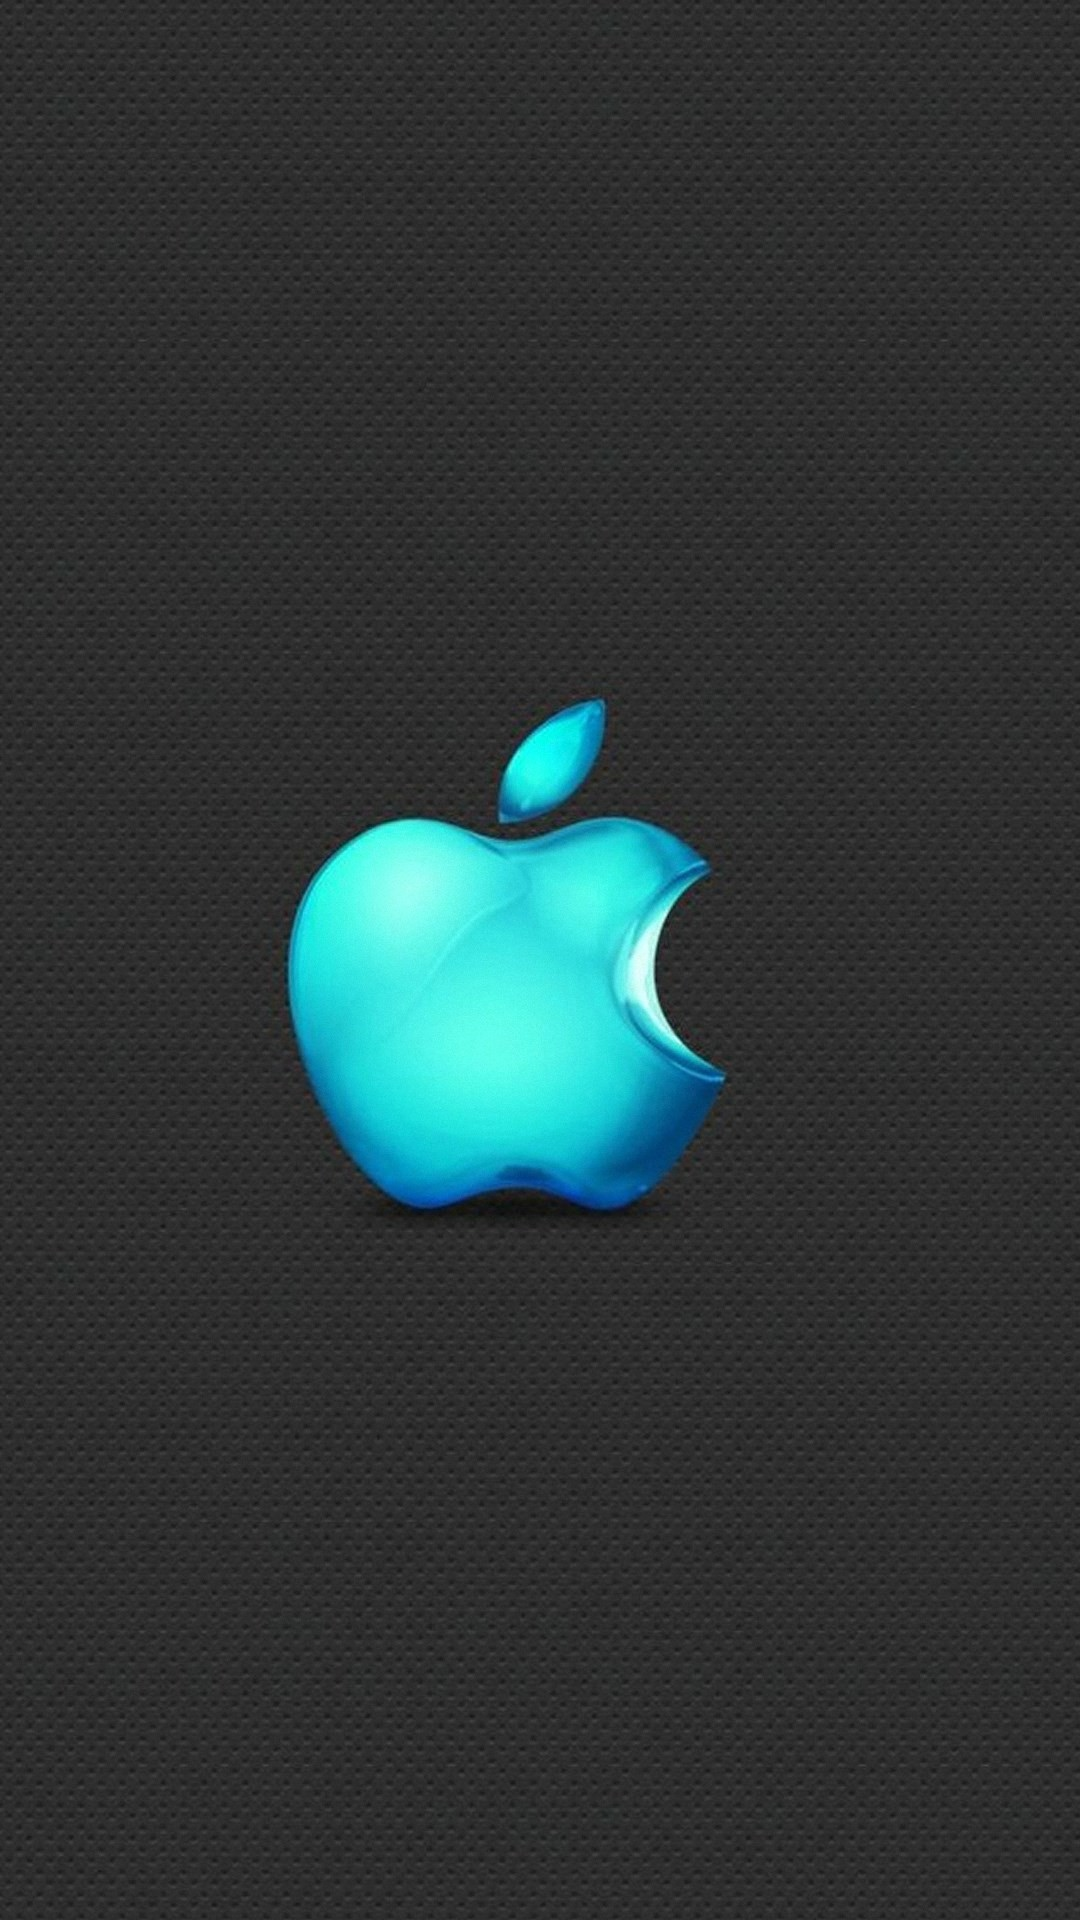 Apple Logo Hd Wallpaper 78 Images